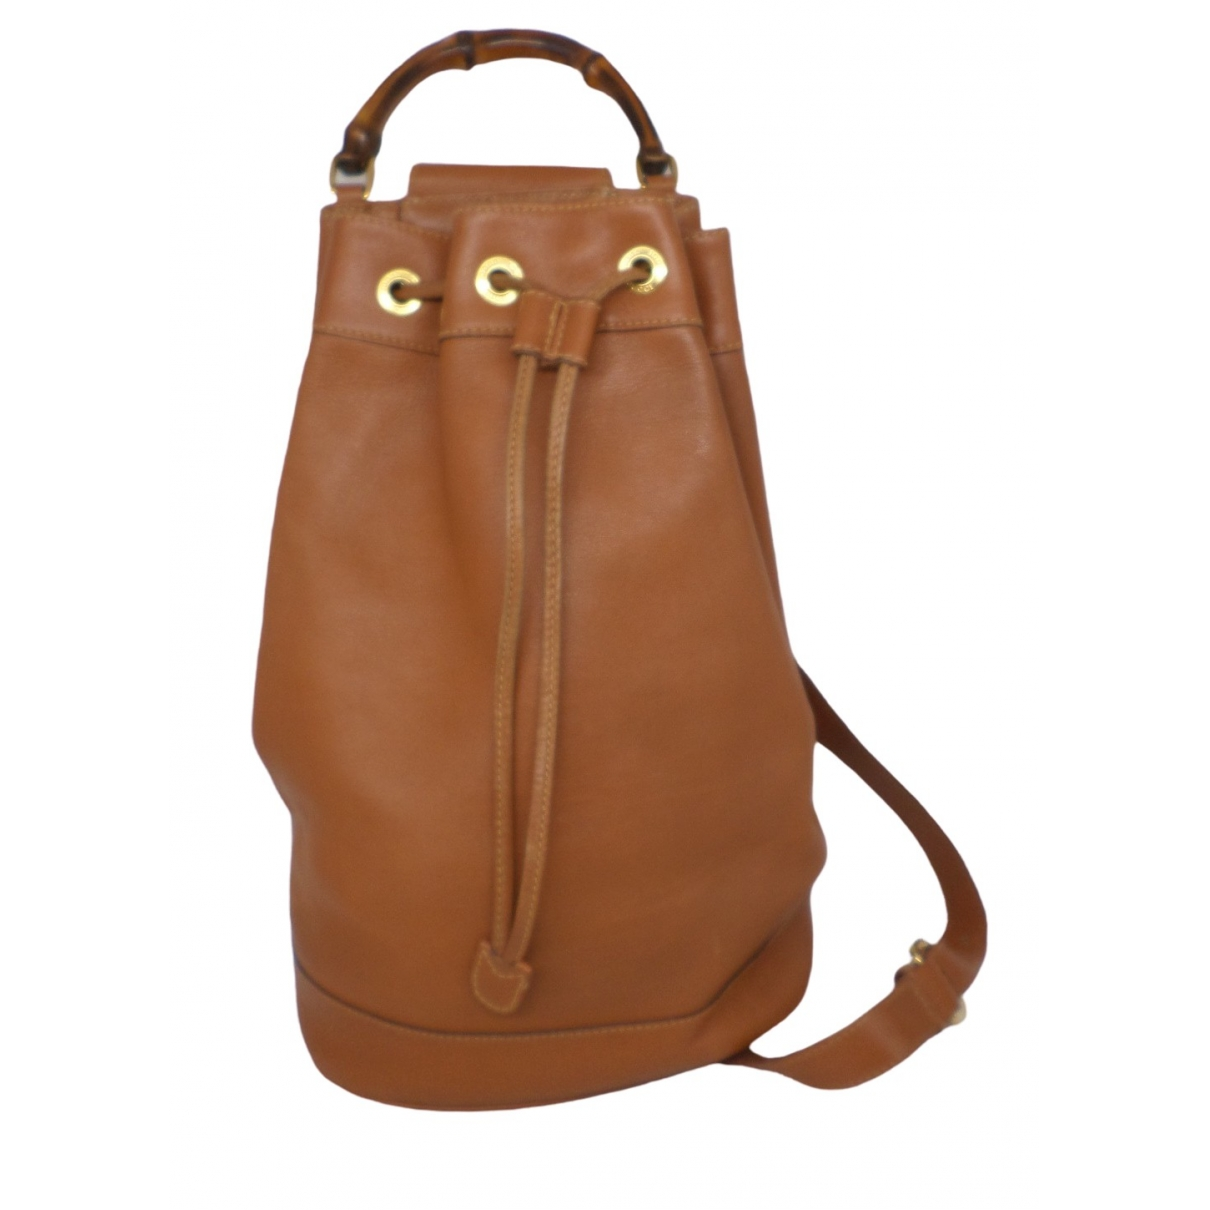 Gucci Bamboo Brown Leather backpack for Women \N